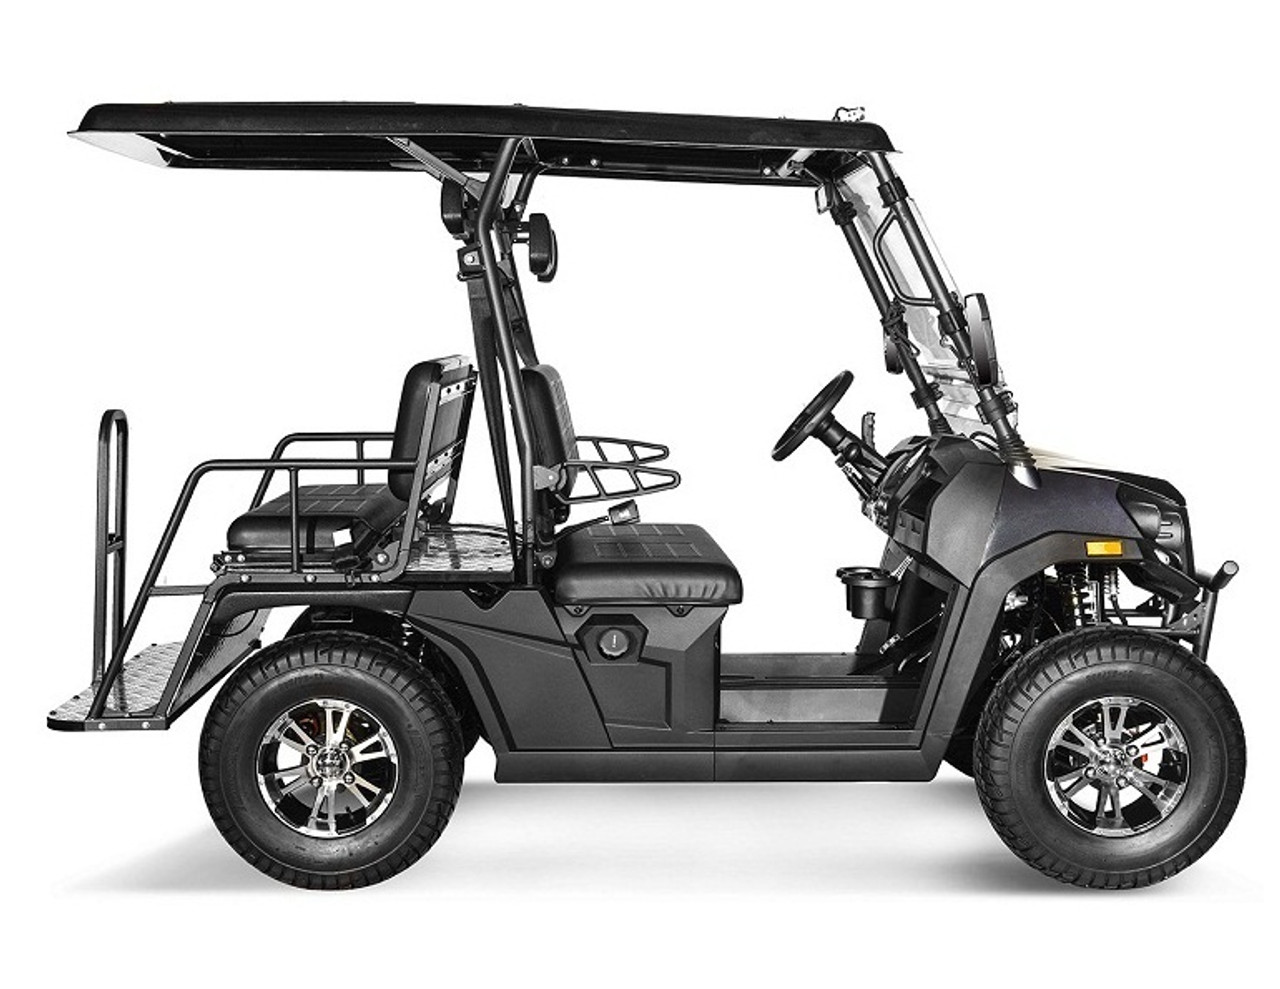 Grey - Vitacci Rover-200 EFI 169cc (Golf Cart) UTV, 4-stroke, Single-cylinder, Oil-cooled - Fully Assembled and Tested